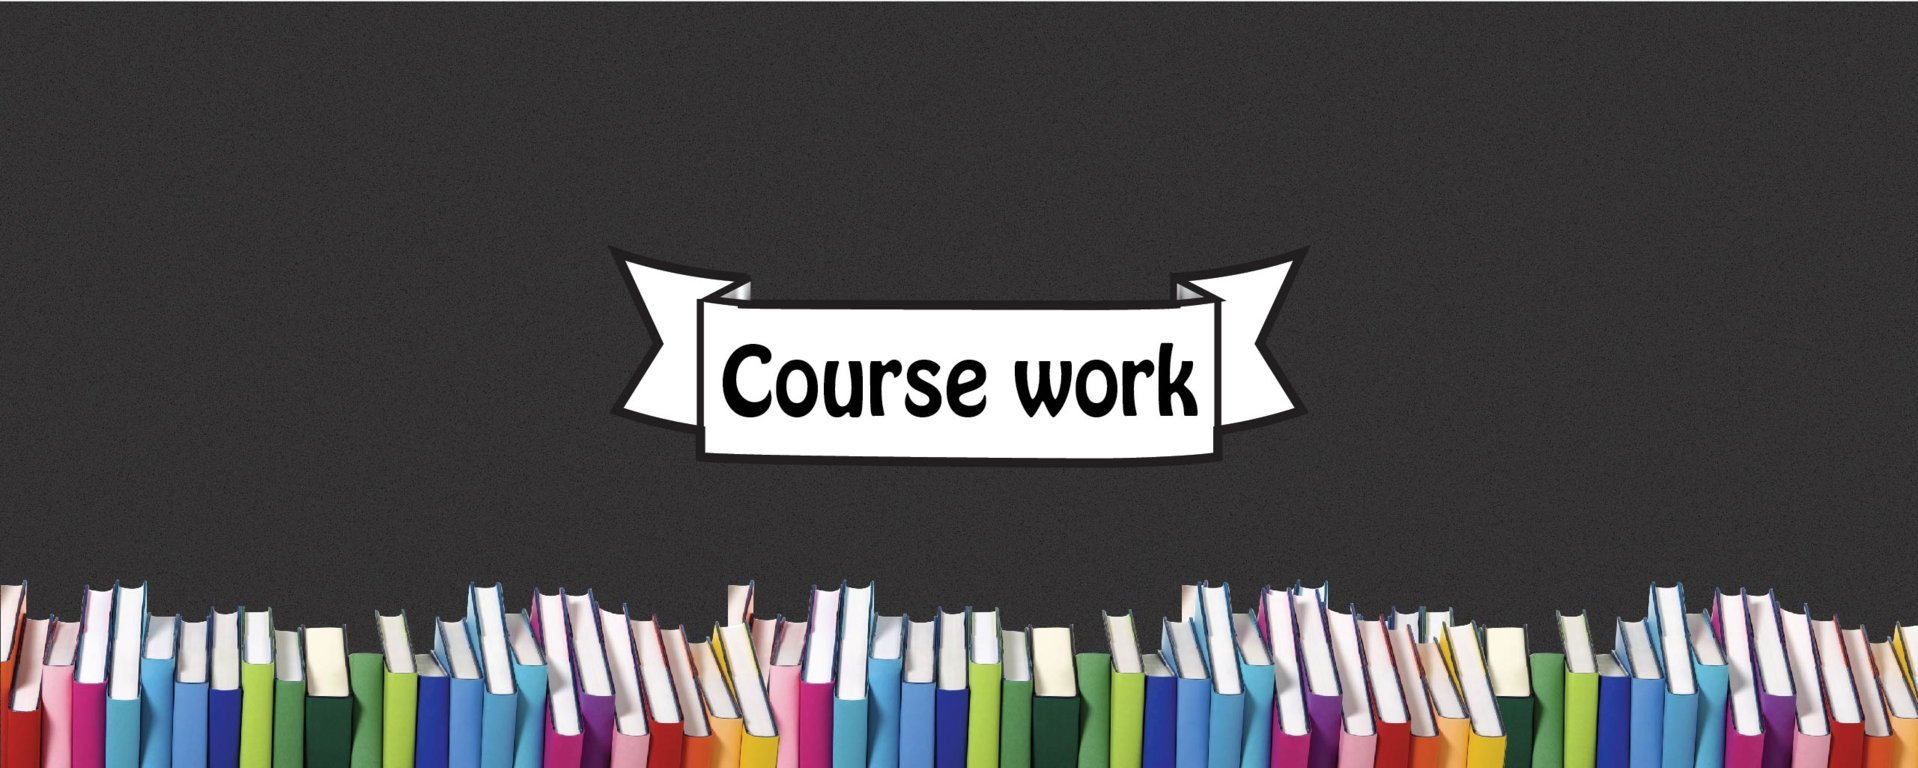 business at work coursework Two years worth of business coursework uploaded for your convenience.